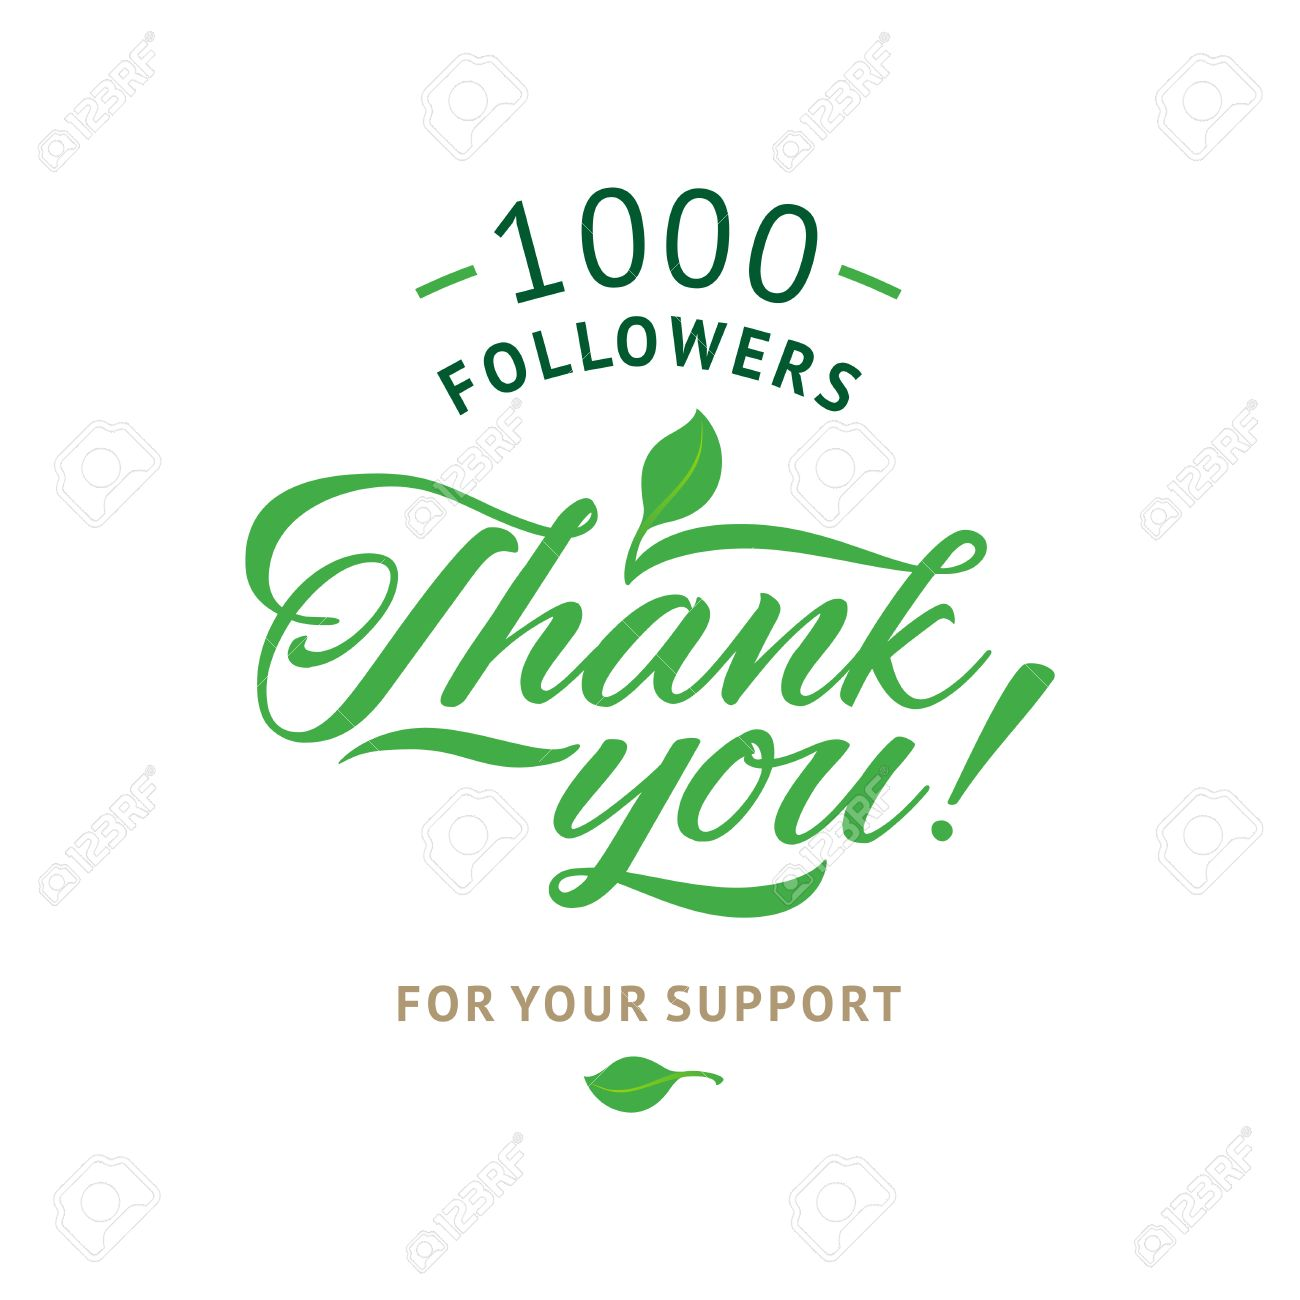 Thank you 1000 followers card vector ecology design template thank you 1000 followers card vector ecology design template for network friends and followers spiritdancerdesigns Images